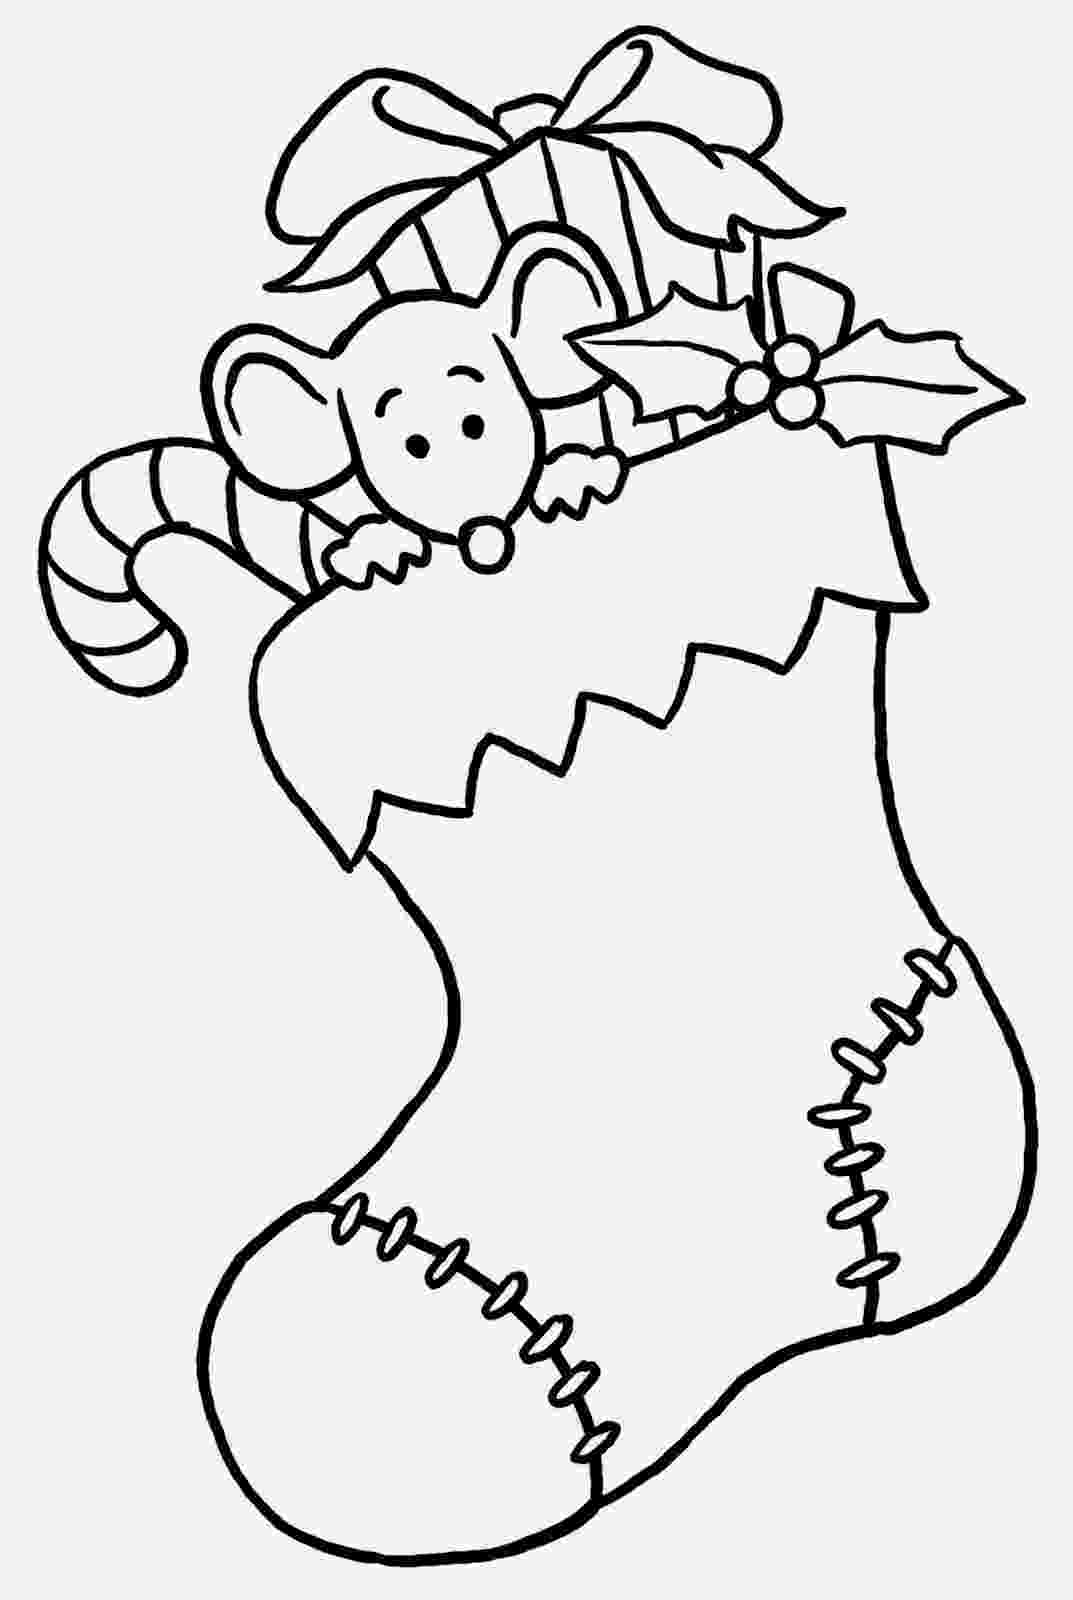 printable preschool coloring pages free printable preschool coloring pages best coloring coloring preschool pages printable